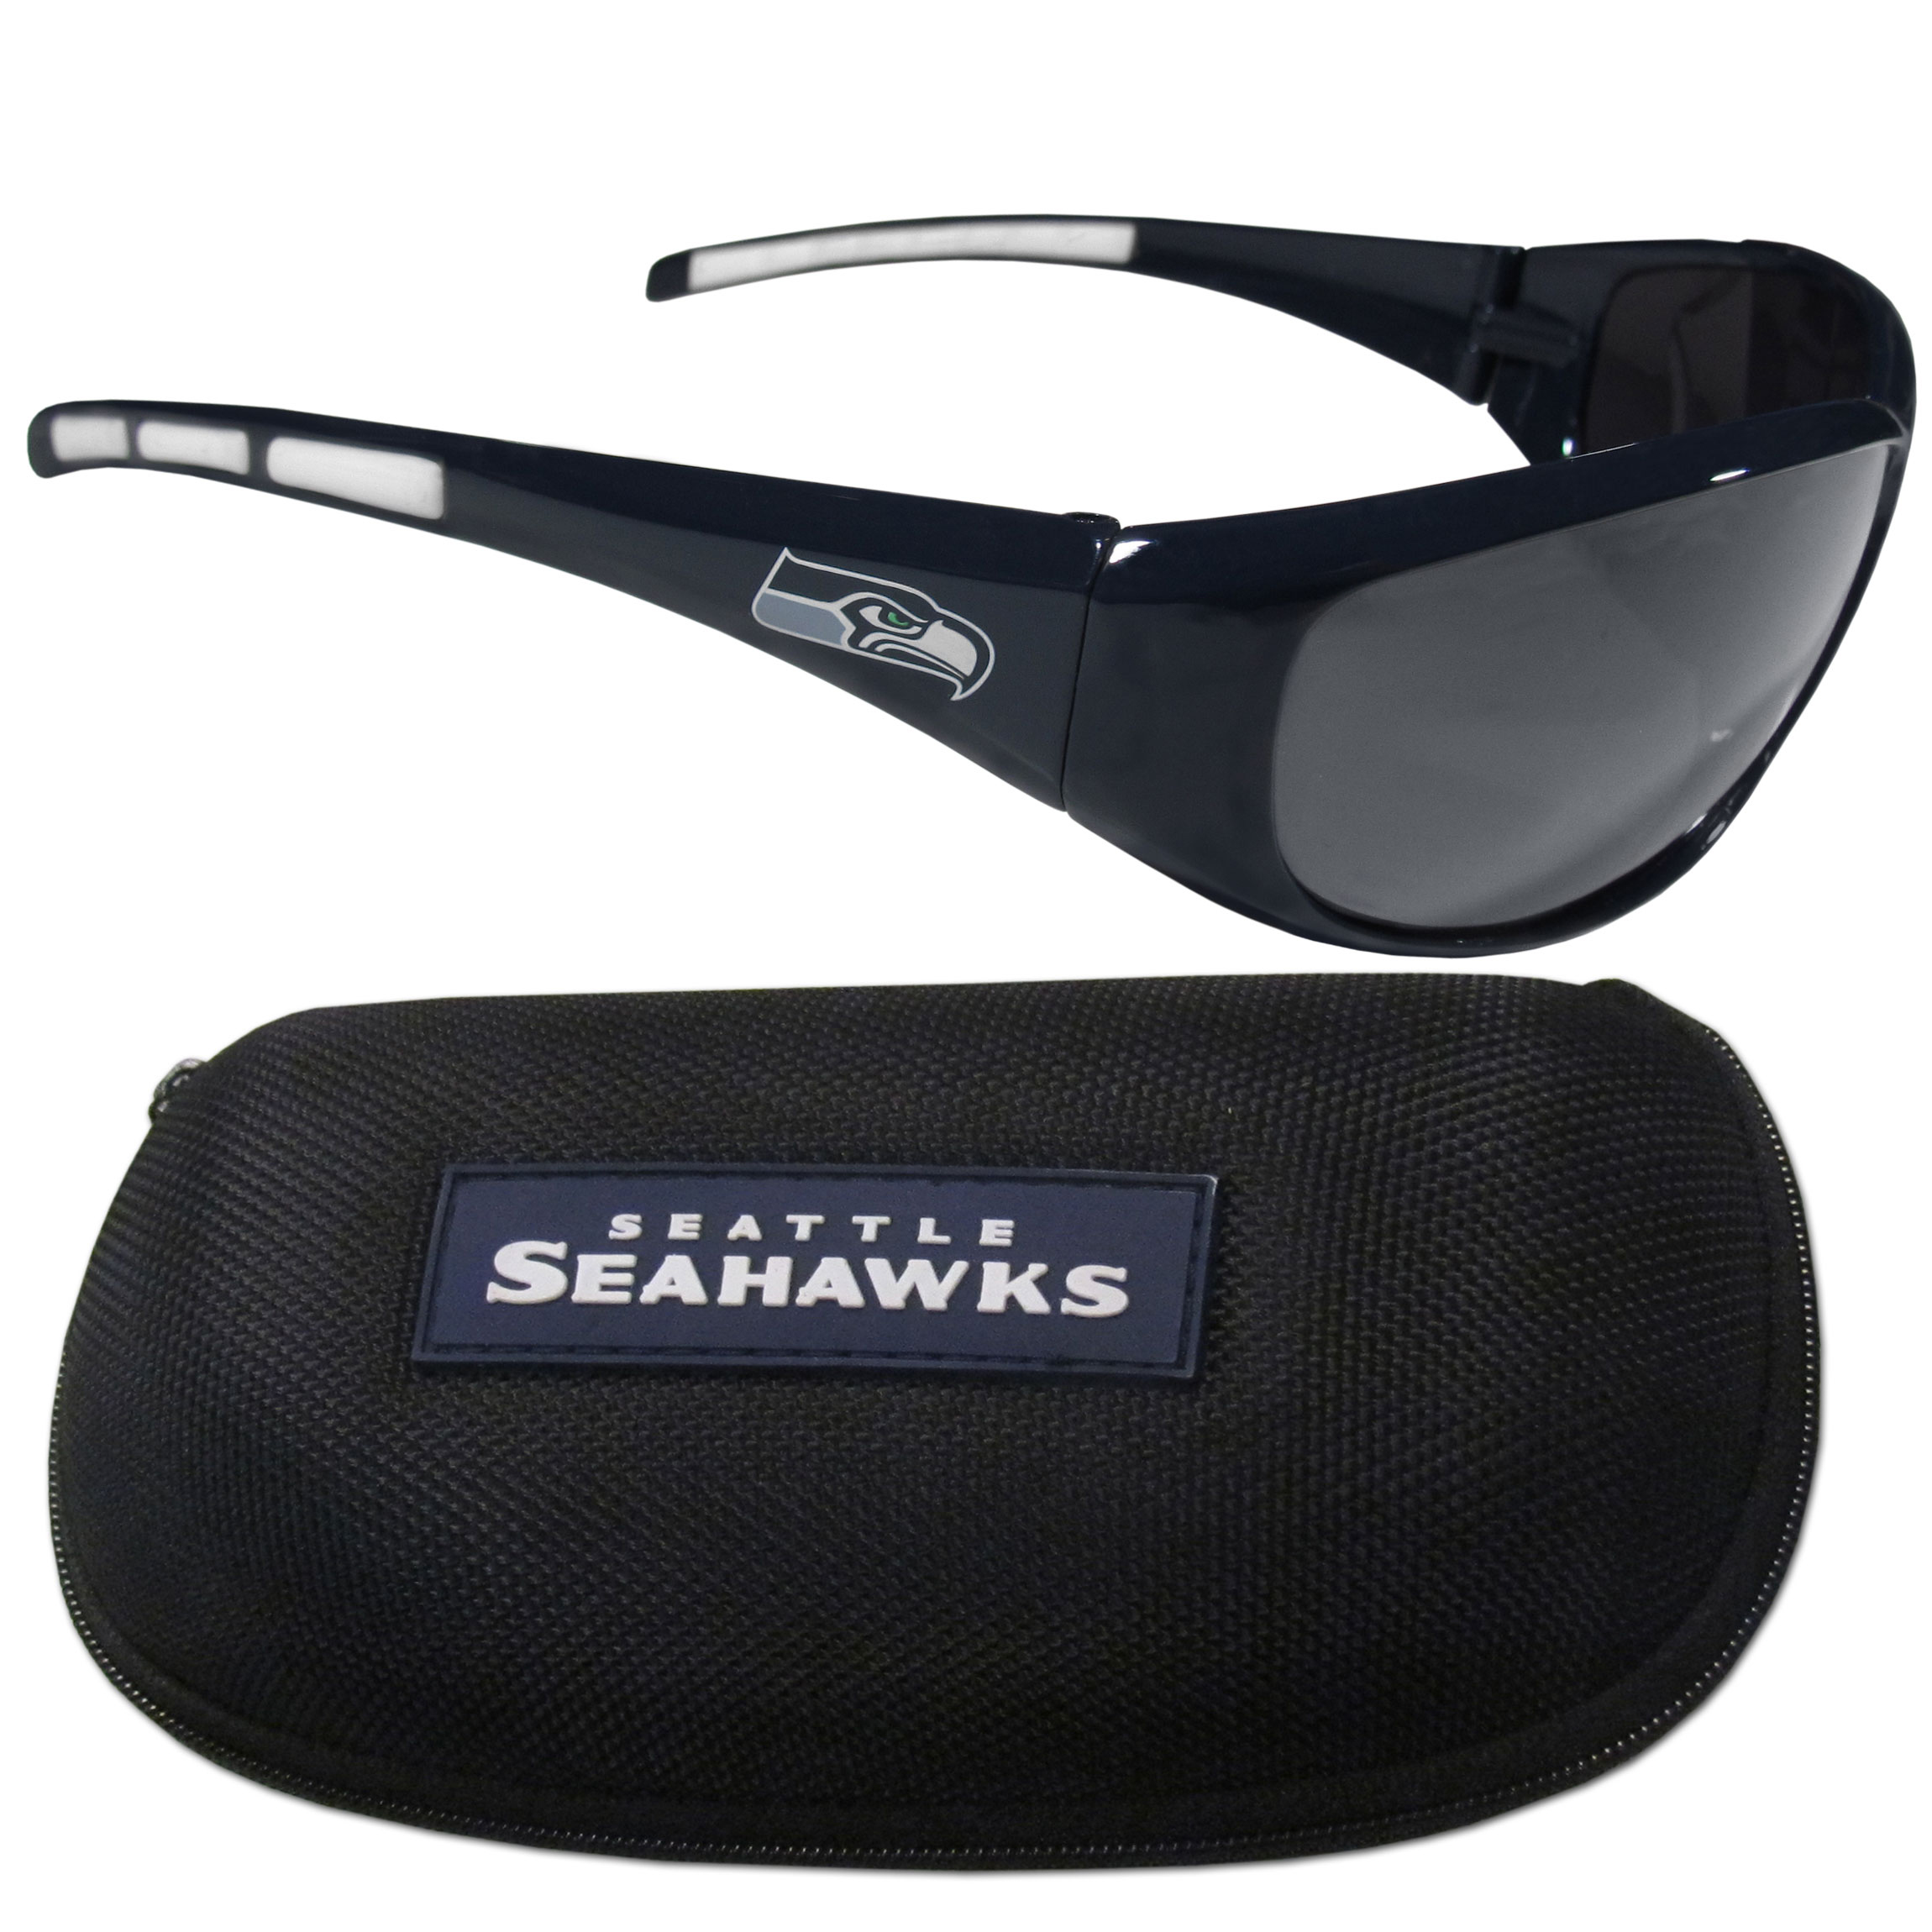 Seattle Seahawks Wrap Sunglass and Case Set - This great set includes a high quality pair of Seattle Seahawks wrap sunglasses and hard carrying case.